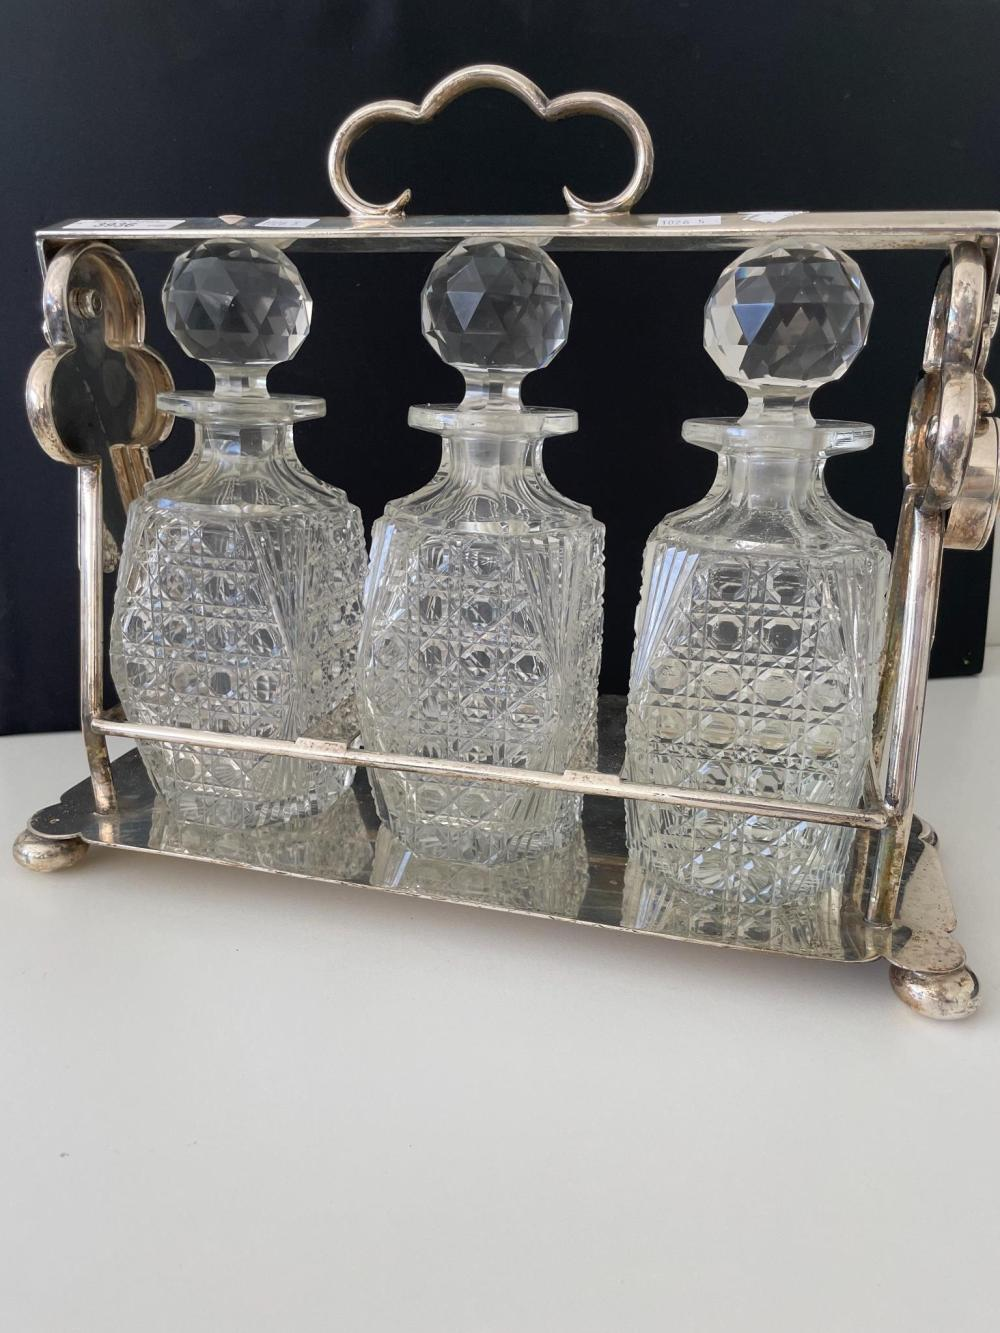 Antique silver plate three bottle tantalus wide 36 cm. (14.17 in.)